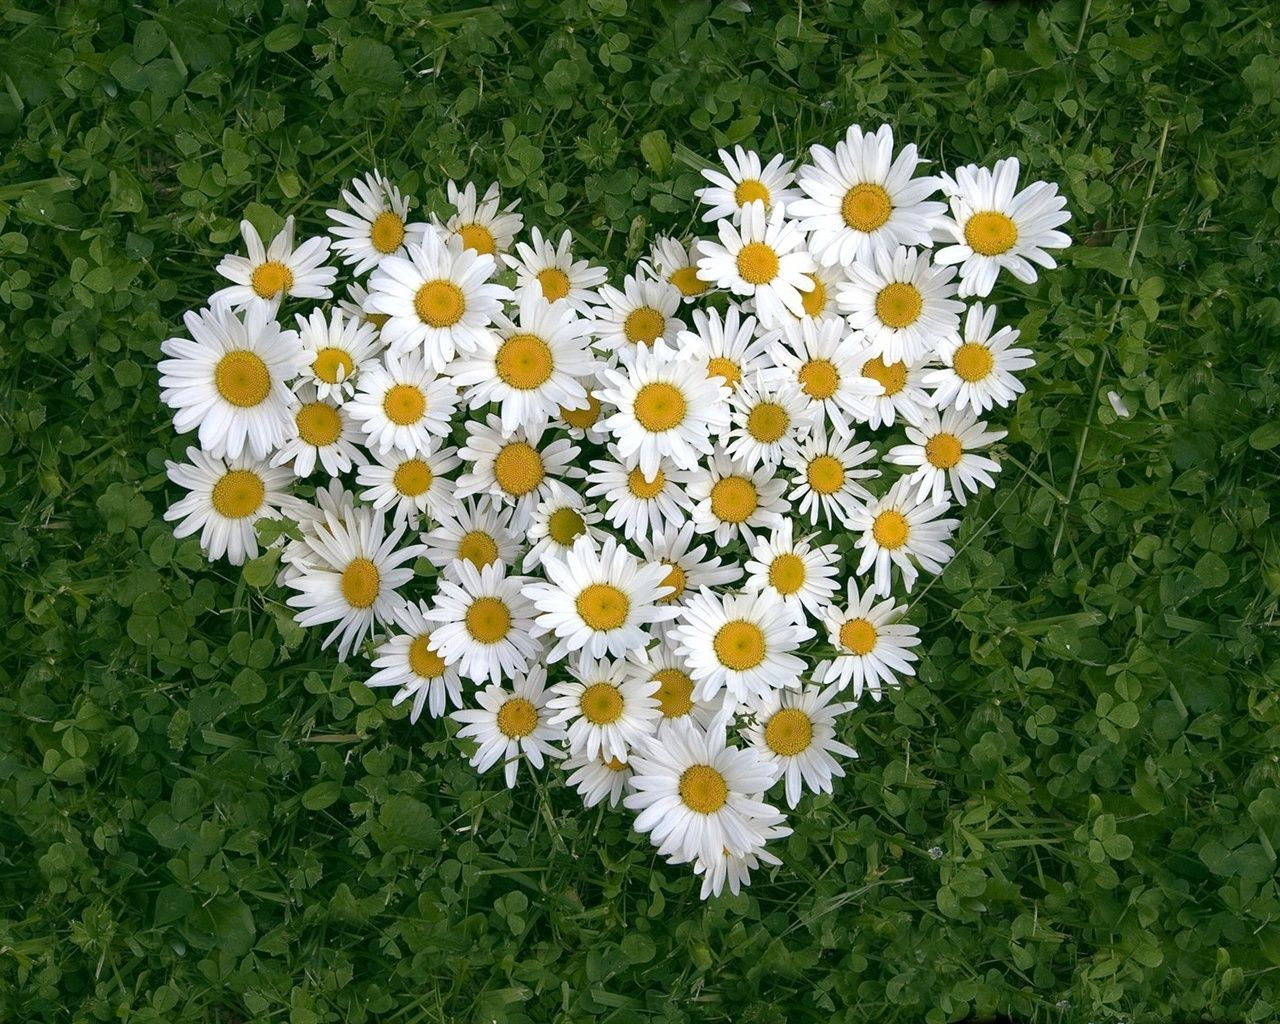 Girl scout daisy flower heart on a bed of lucky green clovers girl girl scout daisy flower heart on a bed of lucky green clovers izmirmasajfo